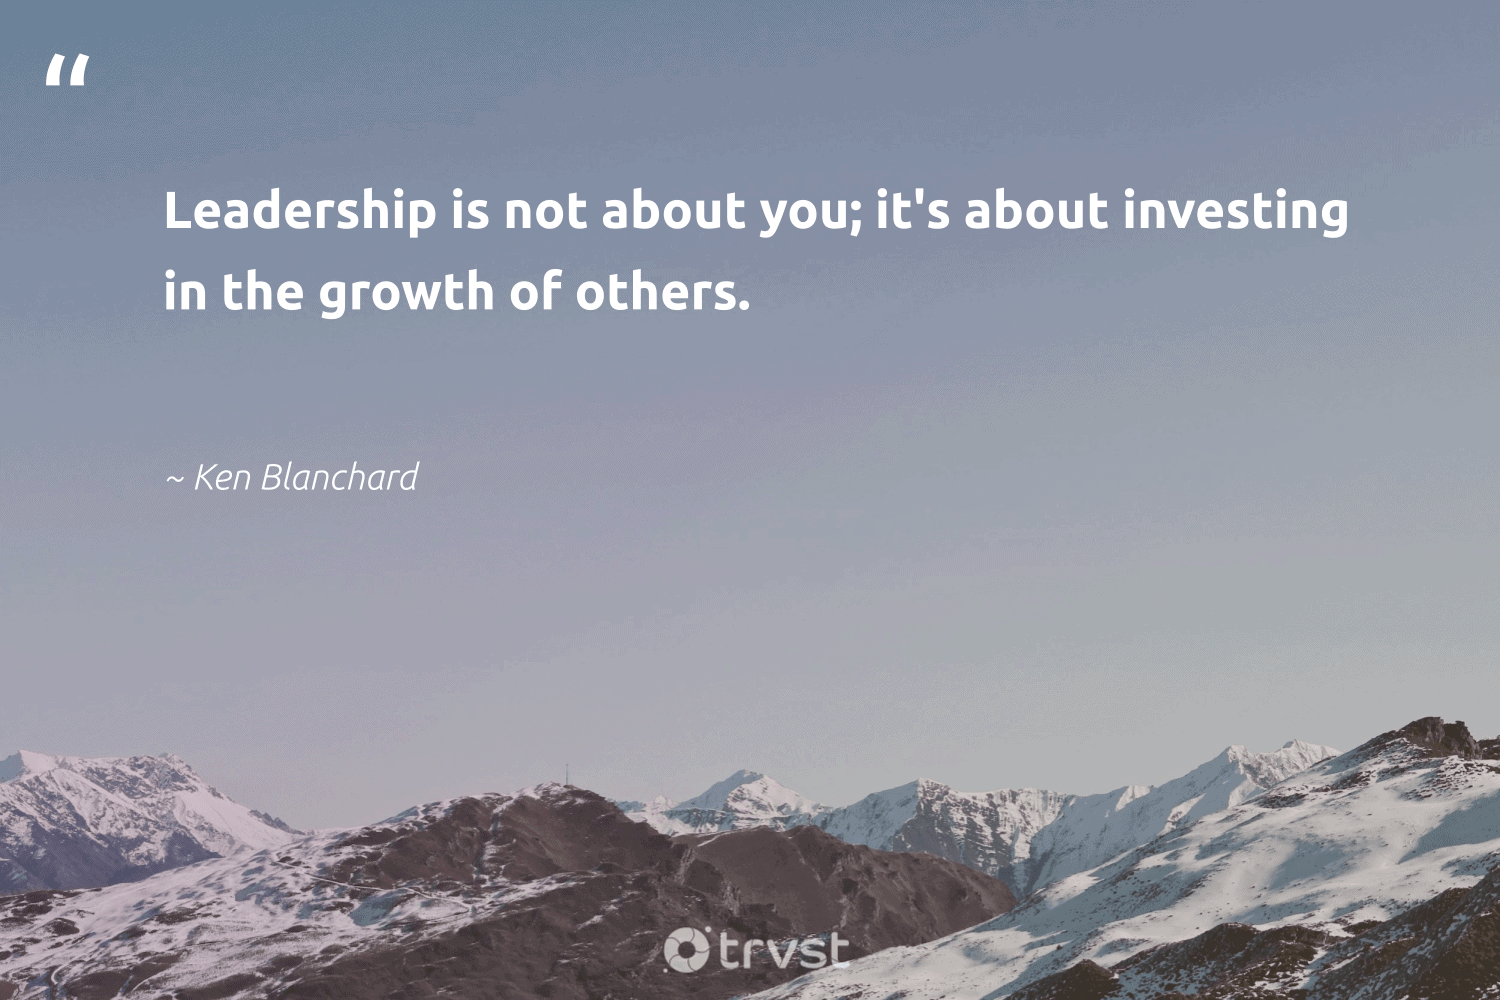 """""""Leadership is not about you; it's about investing in the growth of others.""""  - Ken Blanchard #trvst #quotes #leadership #leadershipqualities #futureofwork #begreat #thinkgreen #leadershipskills #nevergiveup #softskills #bethechange #leadershipdevelopment"""